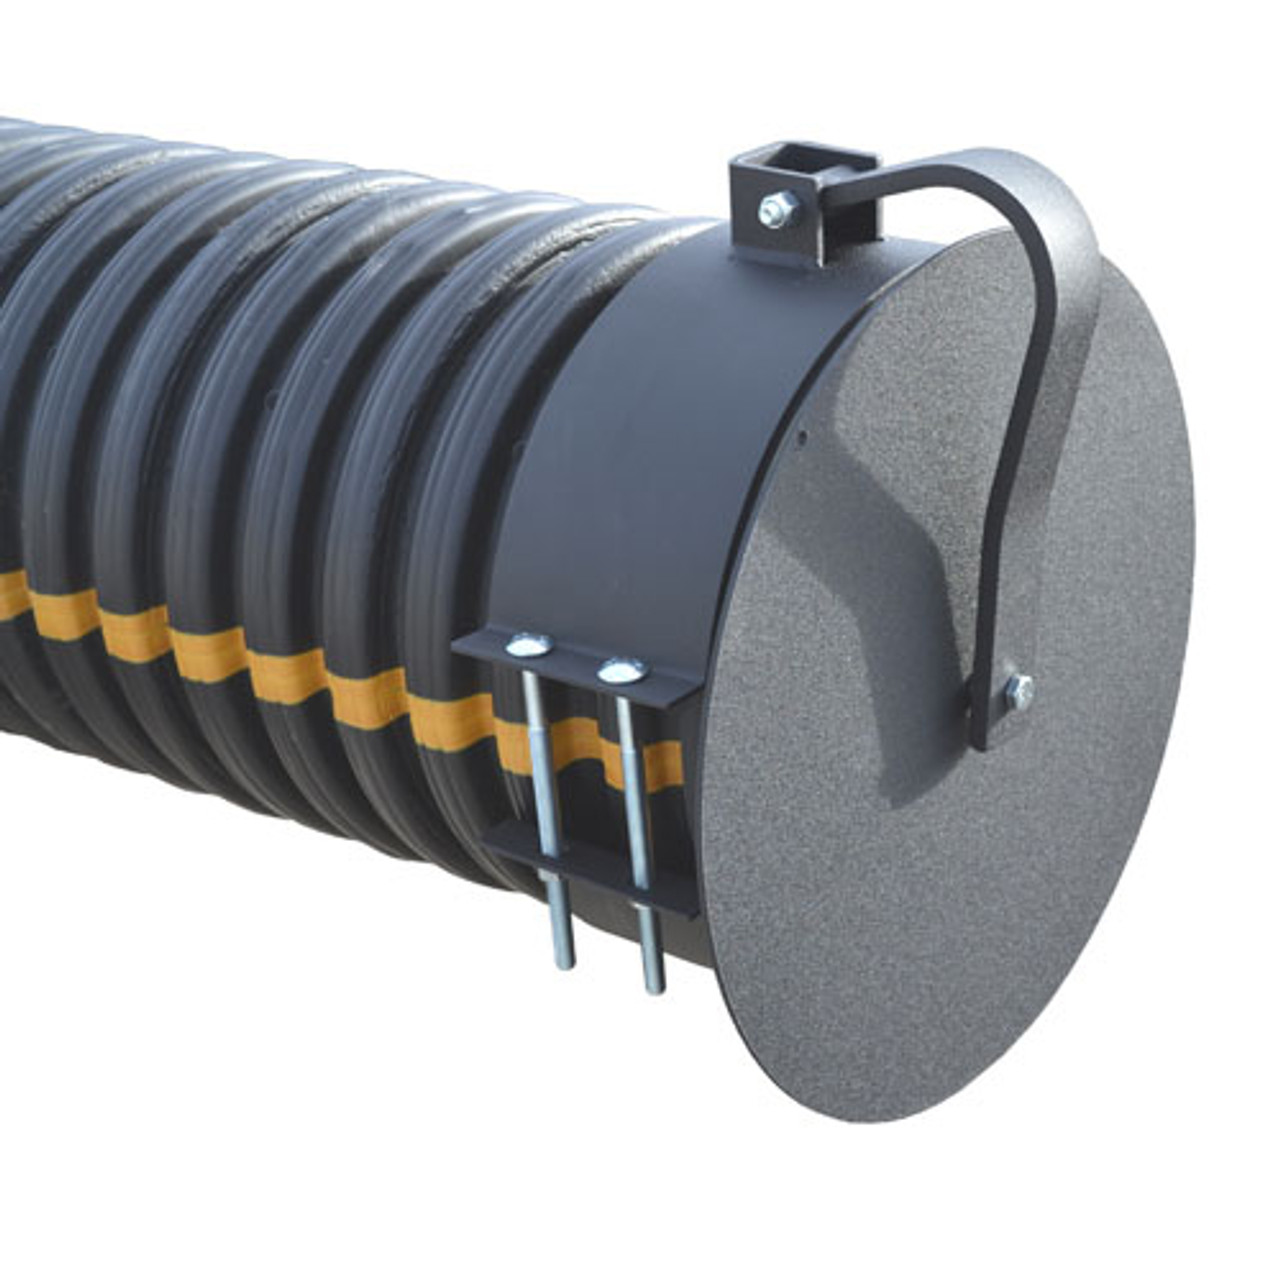 Flap Gate 15 Quot For Corrugated Plastic Pipe The Drainage